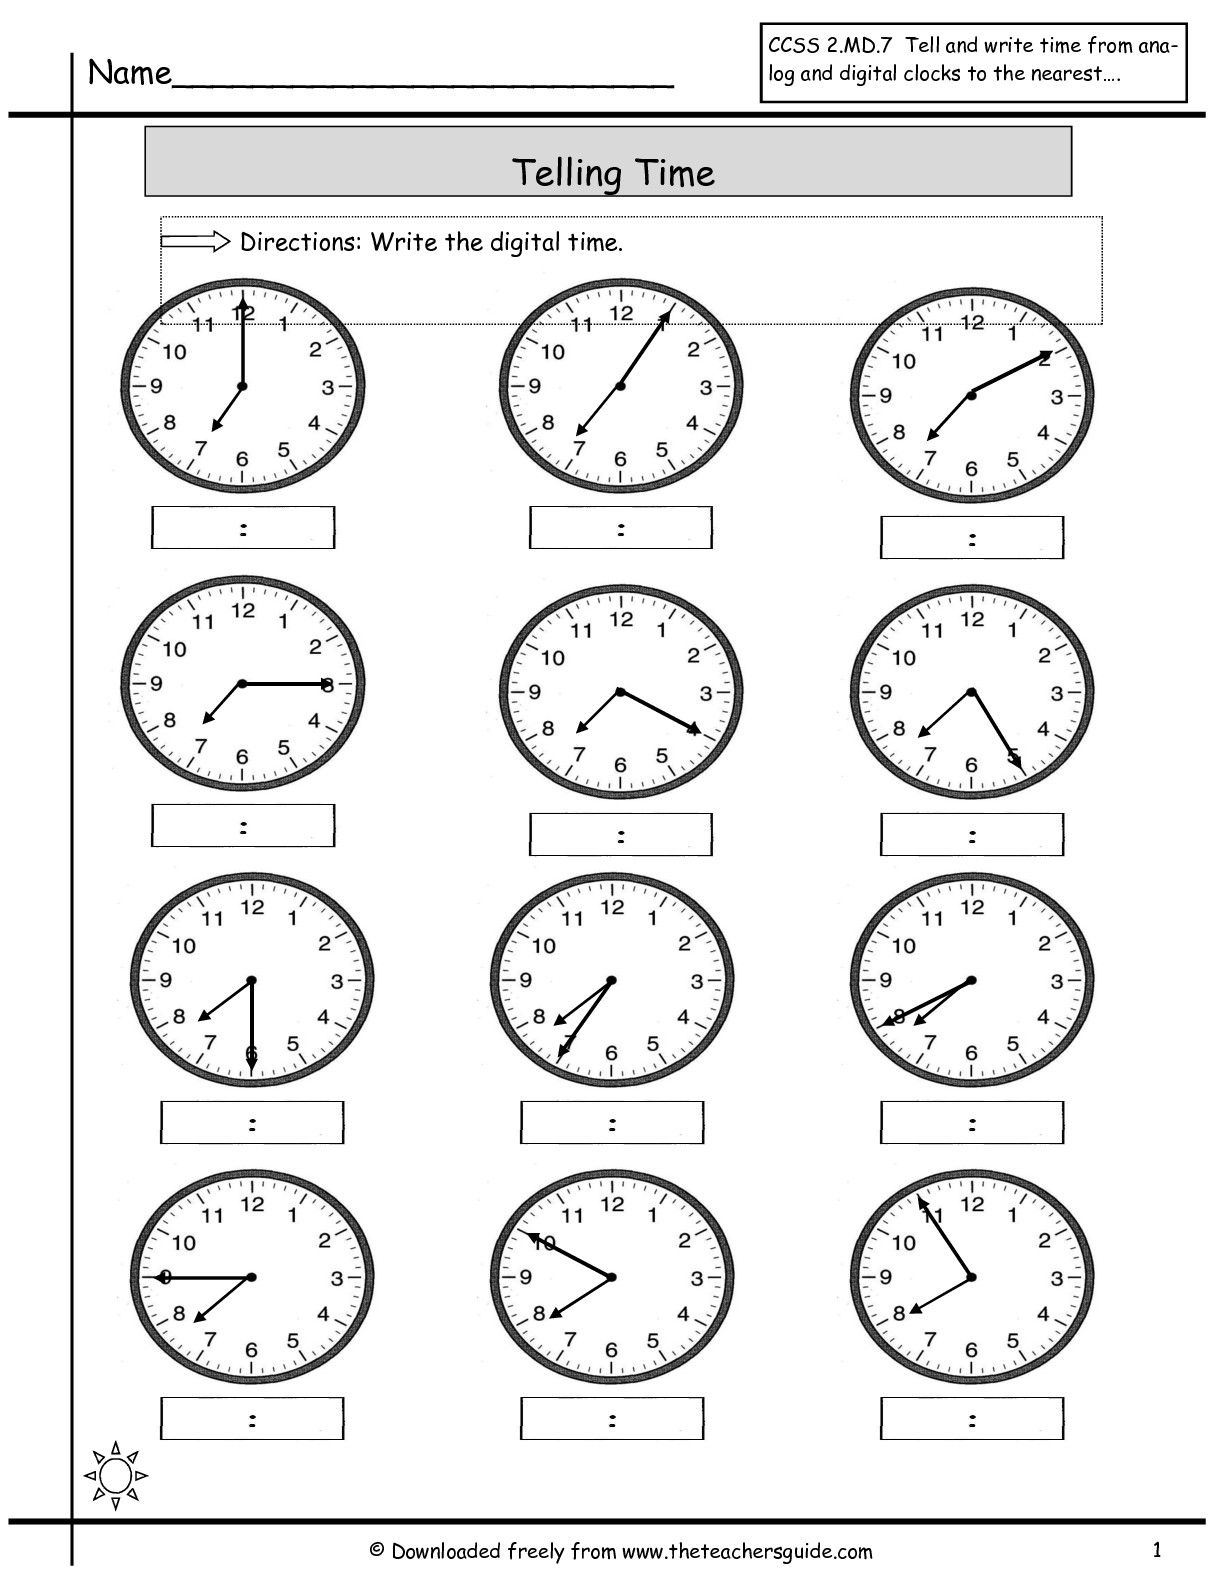 Worksheets Digital Clock Worksheets kids are asked to read the hands on clocks and write correct time down